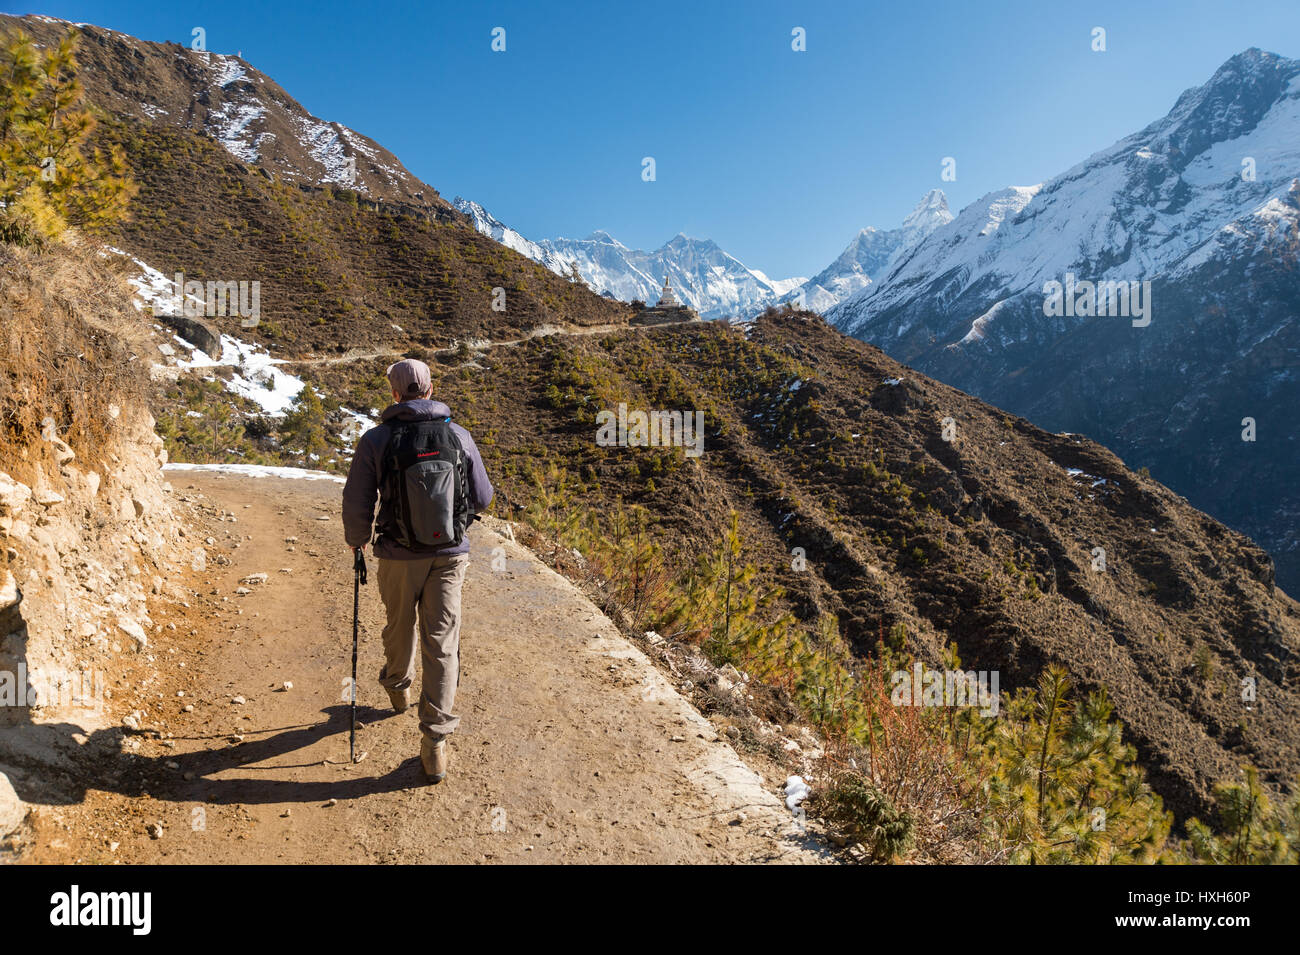 Trekker on a trail in the Himalayan region, with Everest and Ama Dablam mounts in the background - Stock Image